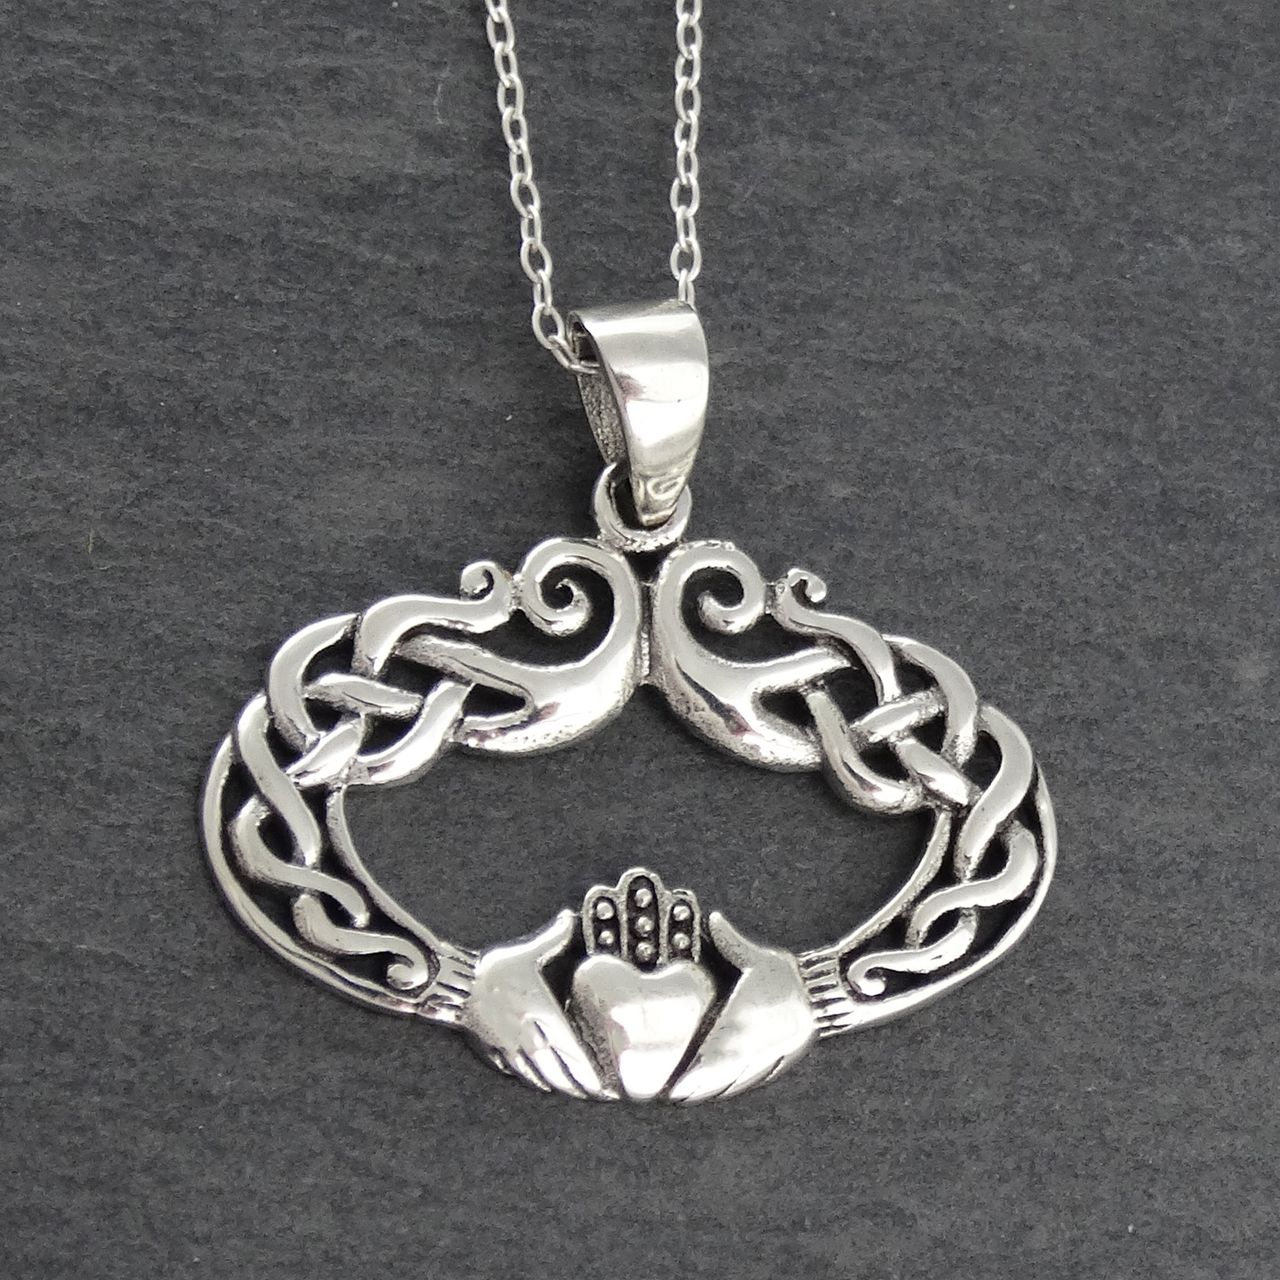 1161cda2fb252 FashionJunkie4Life - Celtic Knot Irish Claddagh Necklace - 925 Sterling  Silver